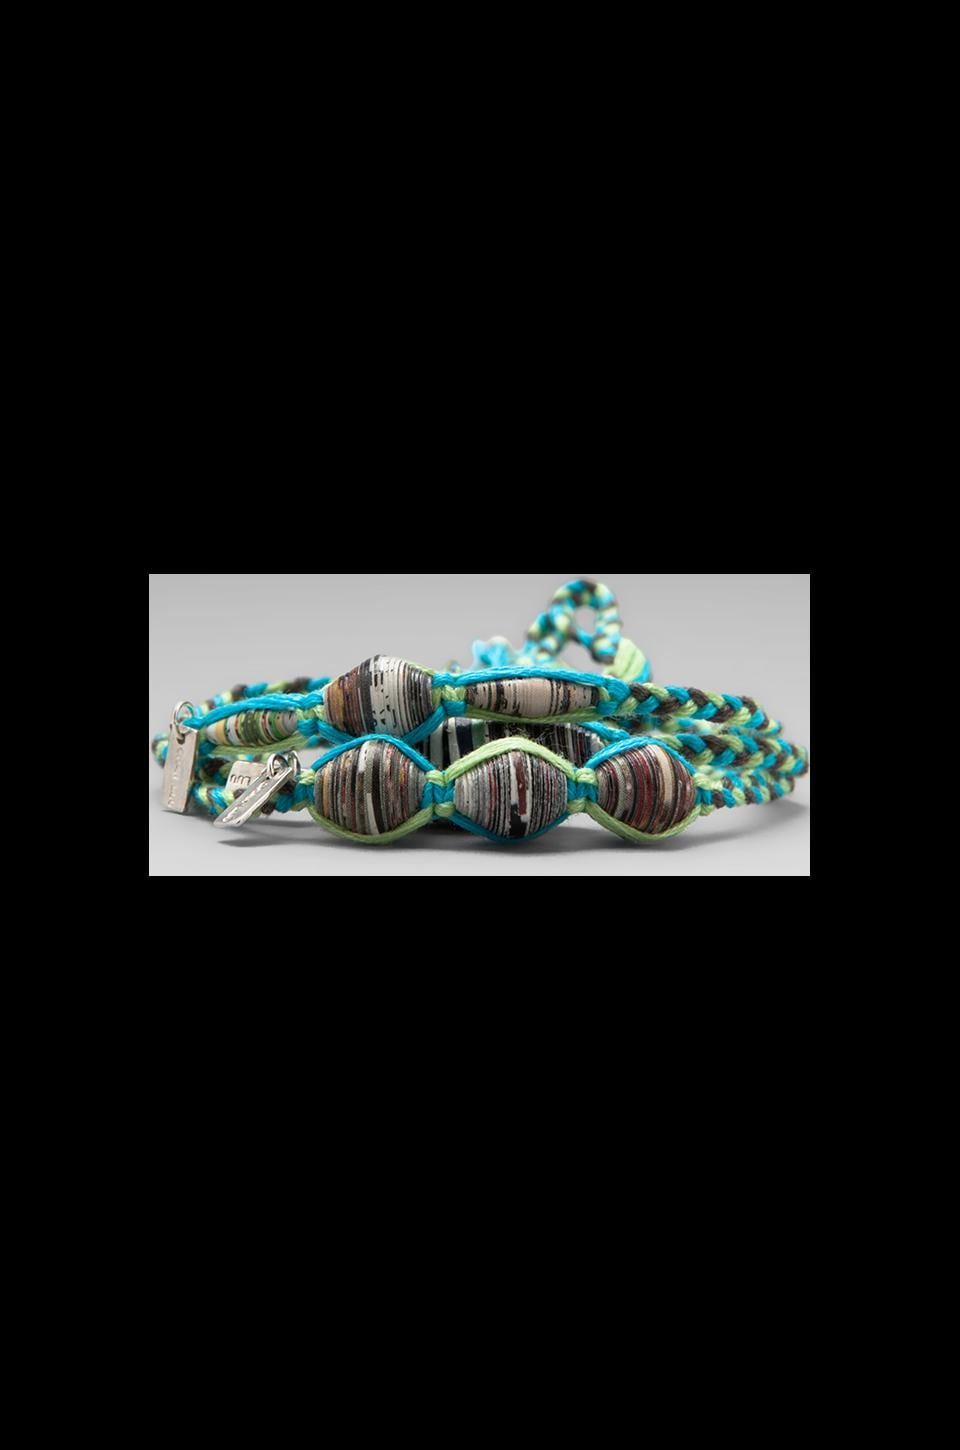 CHAN LUU Beaded Bracelet Set in Paradise Green Mix